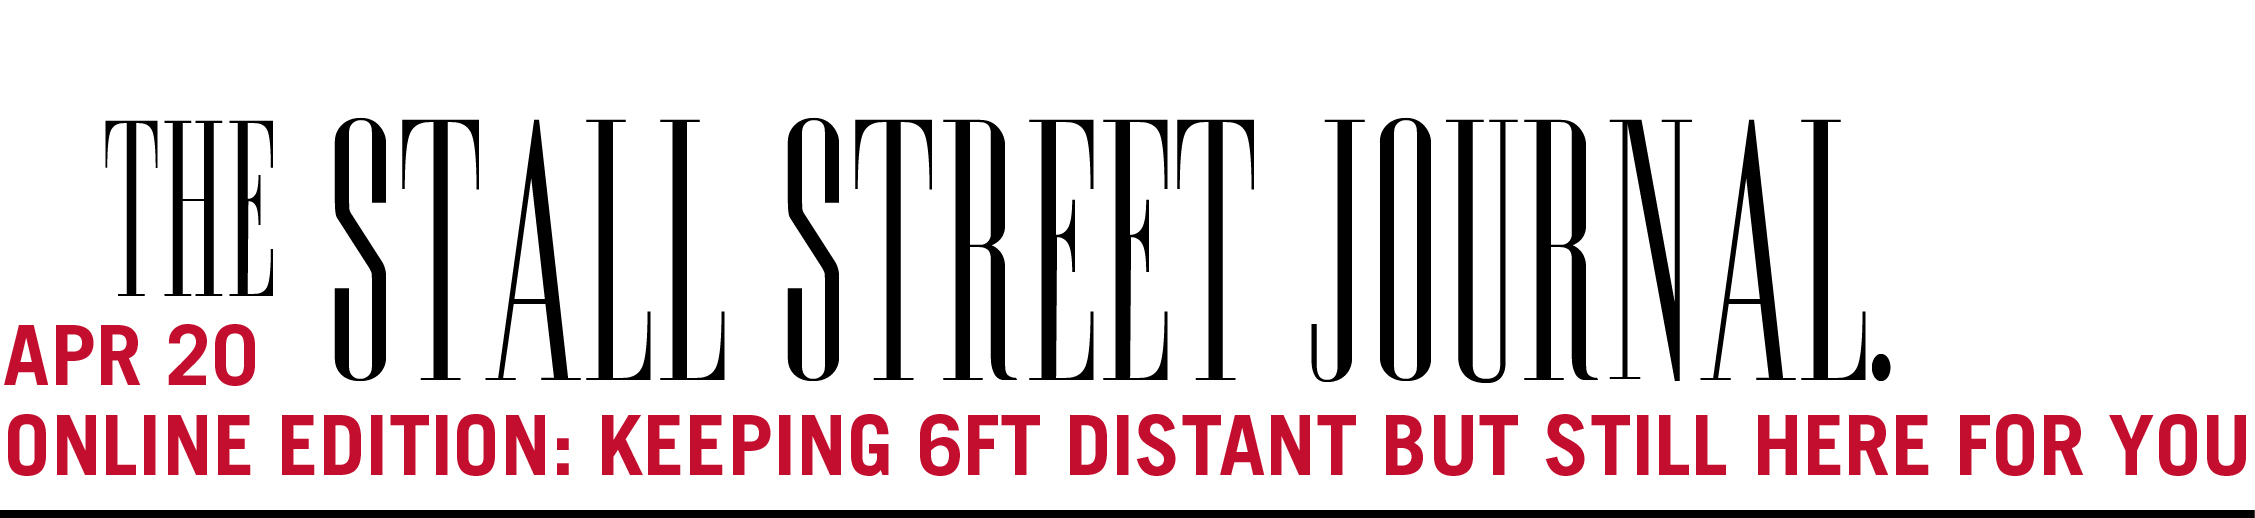 Stylized masthead for publication Stall Street Journal